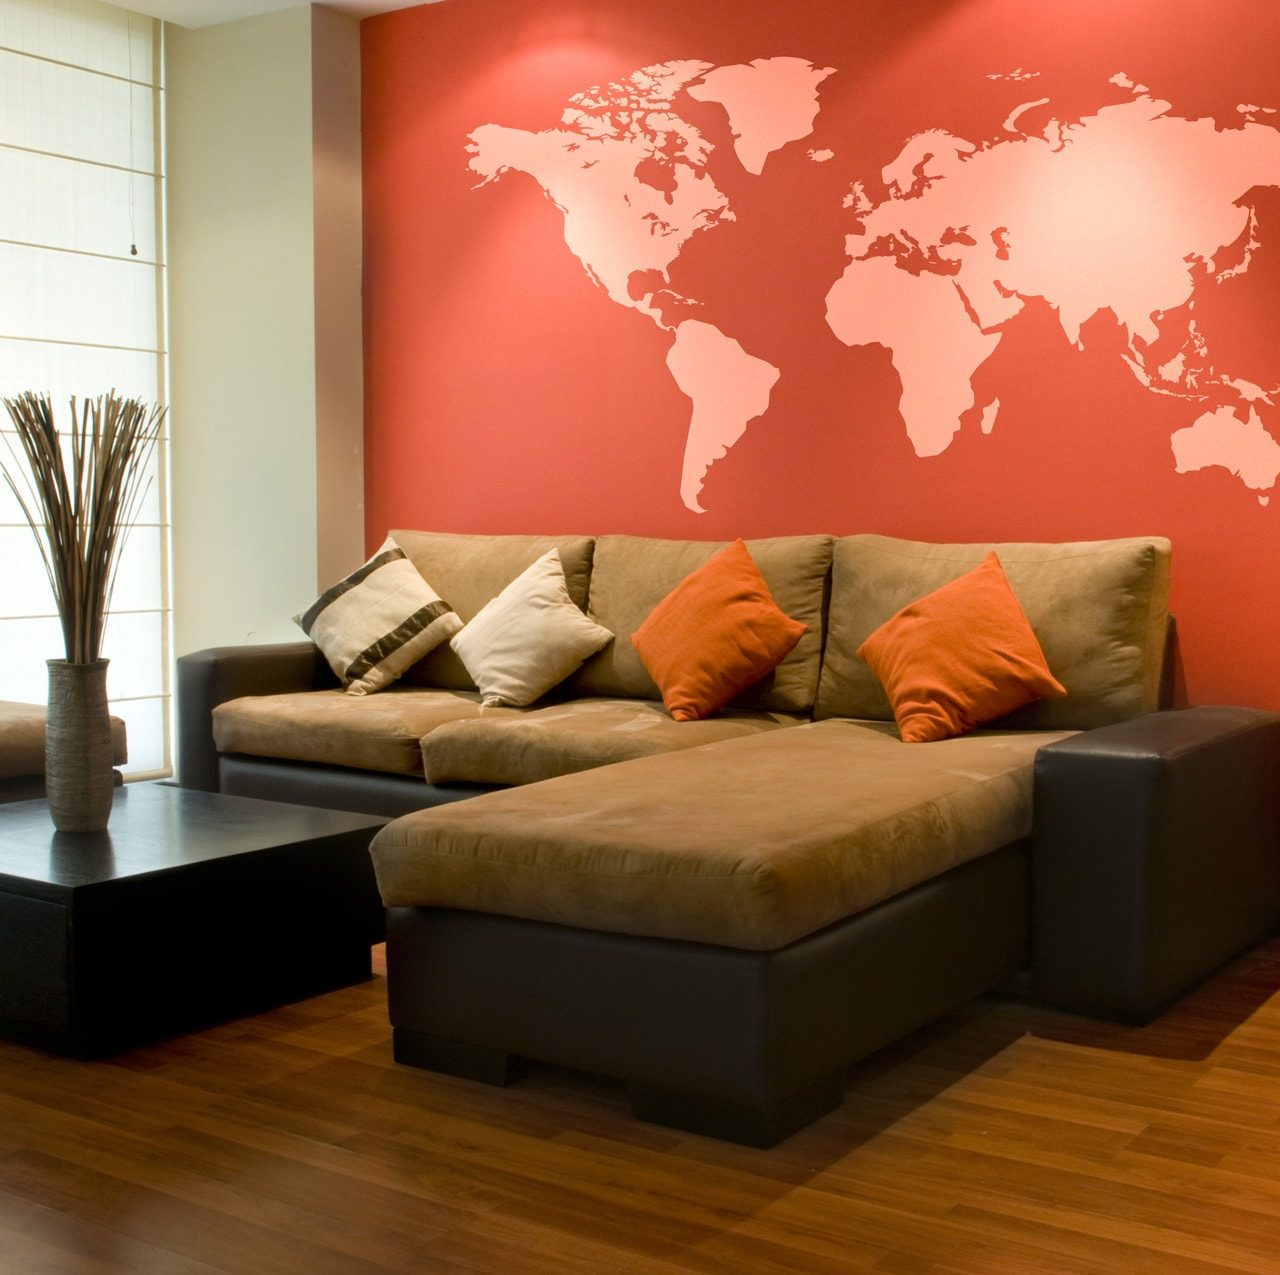 Interior House Painting Services in Salem